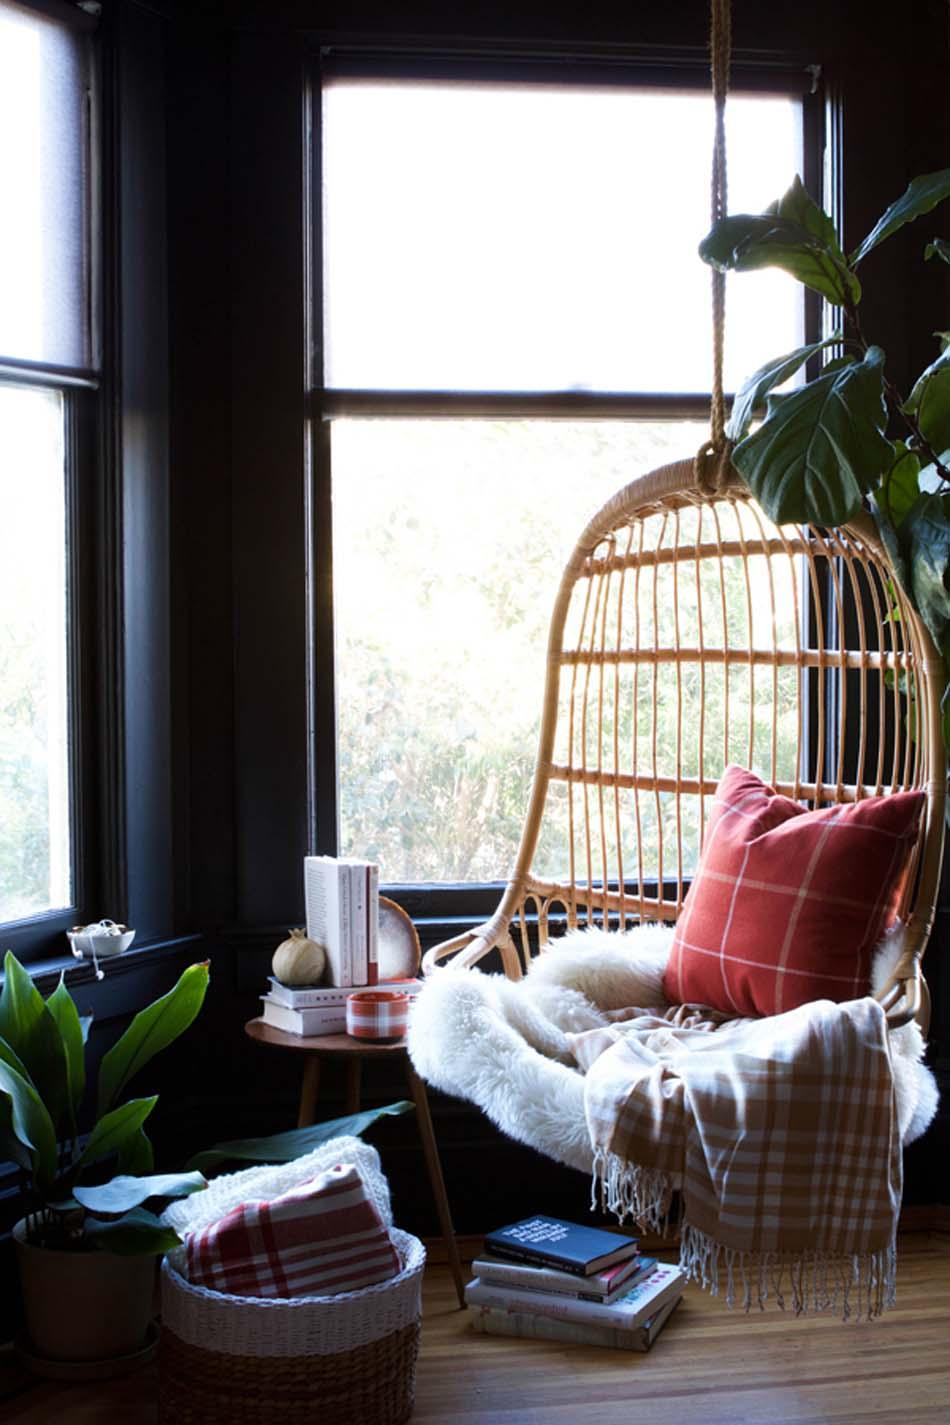 Hang Around in a Birdcage Nook